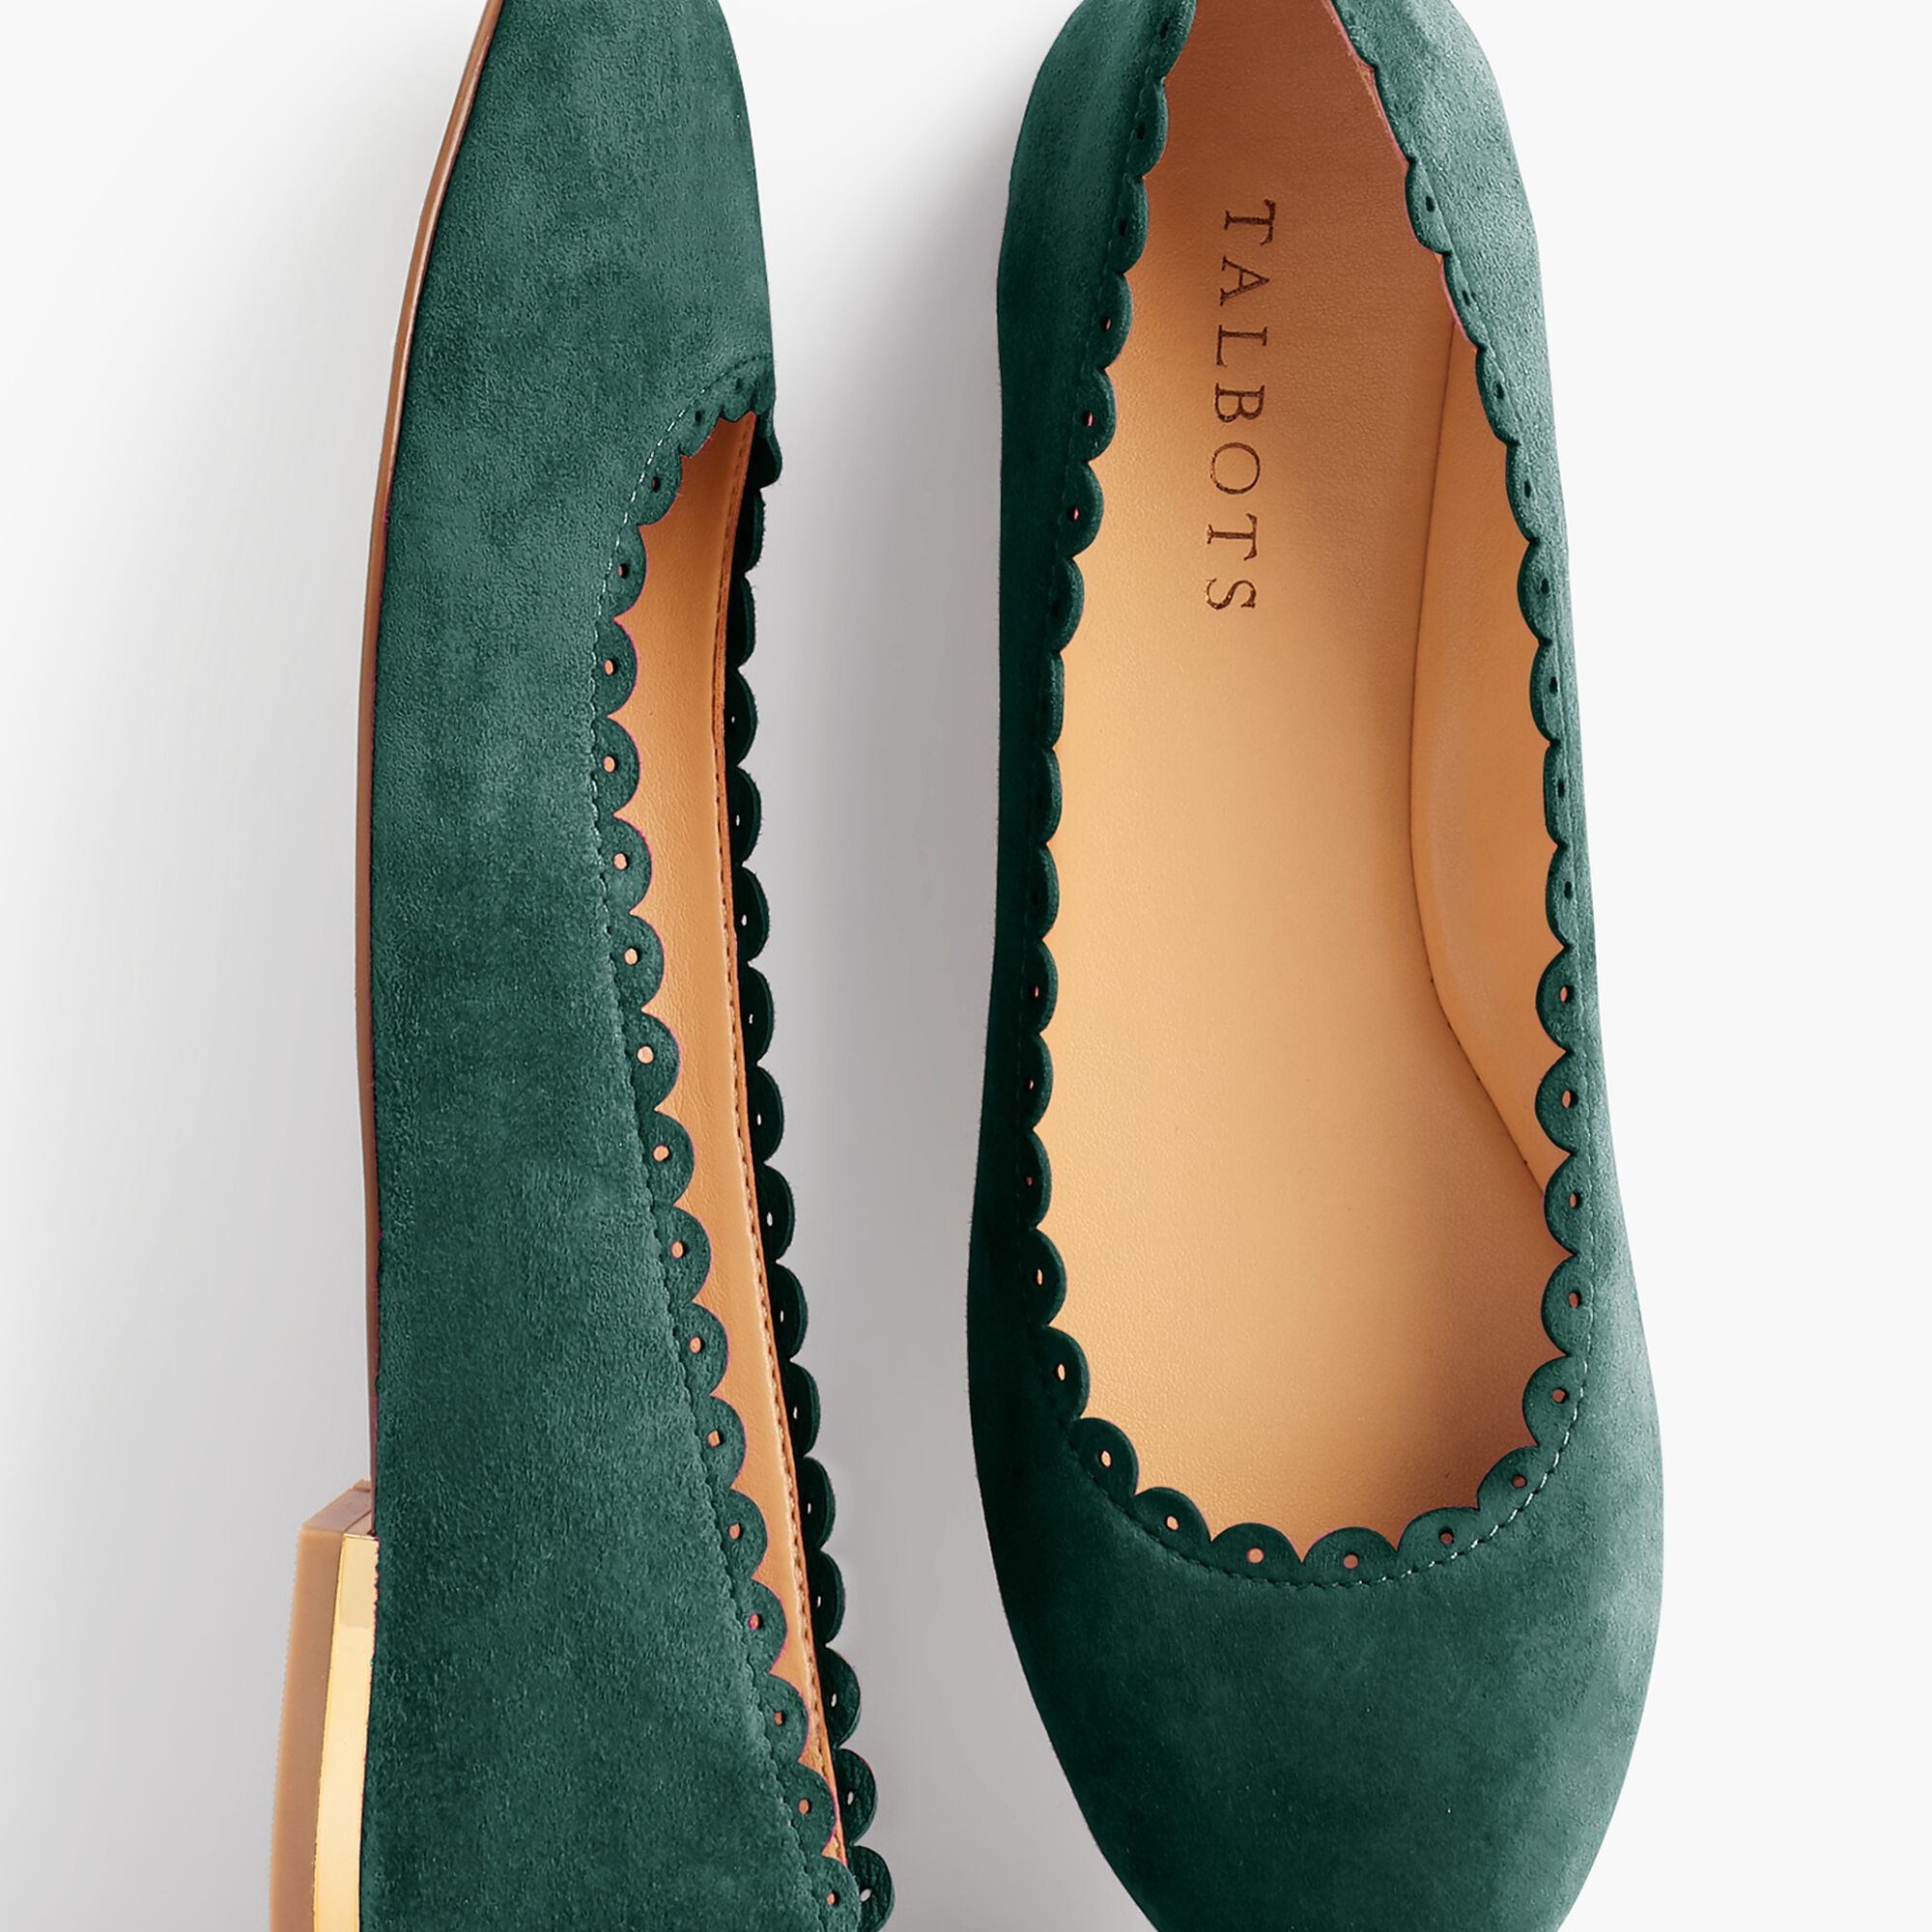 8b56be38d20 Penelope Scalloped Ballet Flats- Kid Suede Opens a New Window.